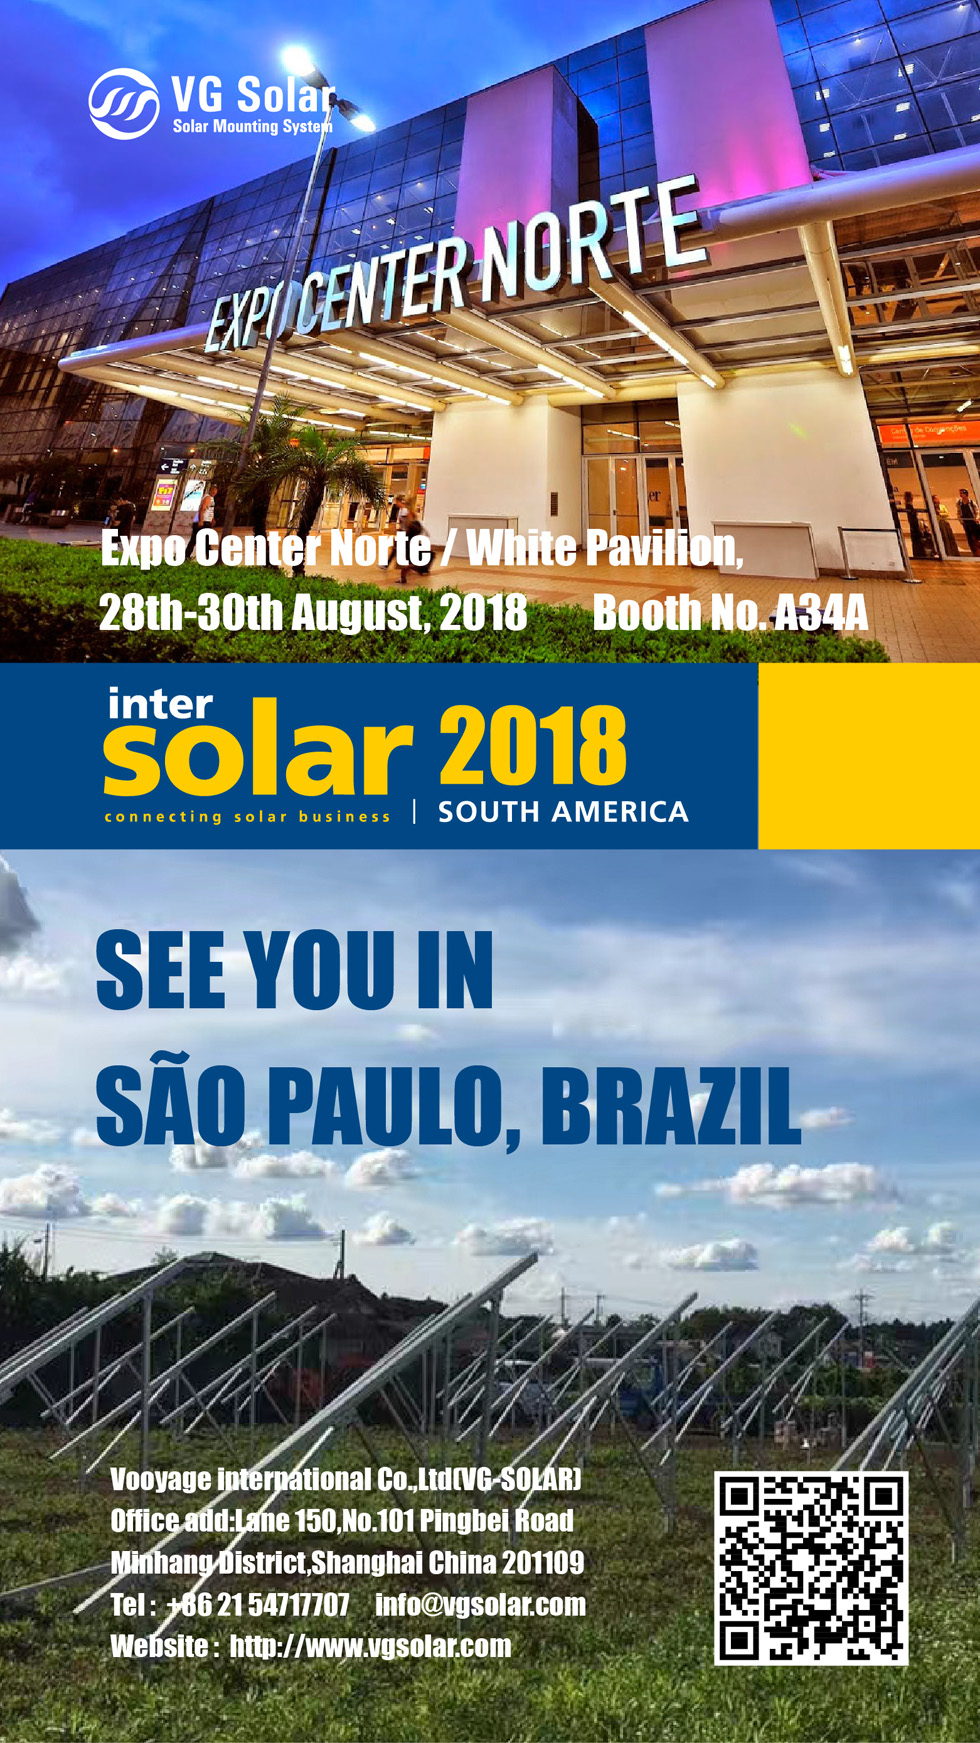 VG Solar was invited to attend the Intersolar South America 2018 which was held in the Expo Center Norte in Sao Paulo, Brazil.